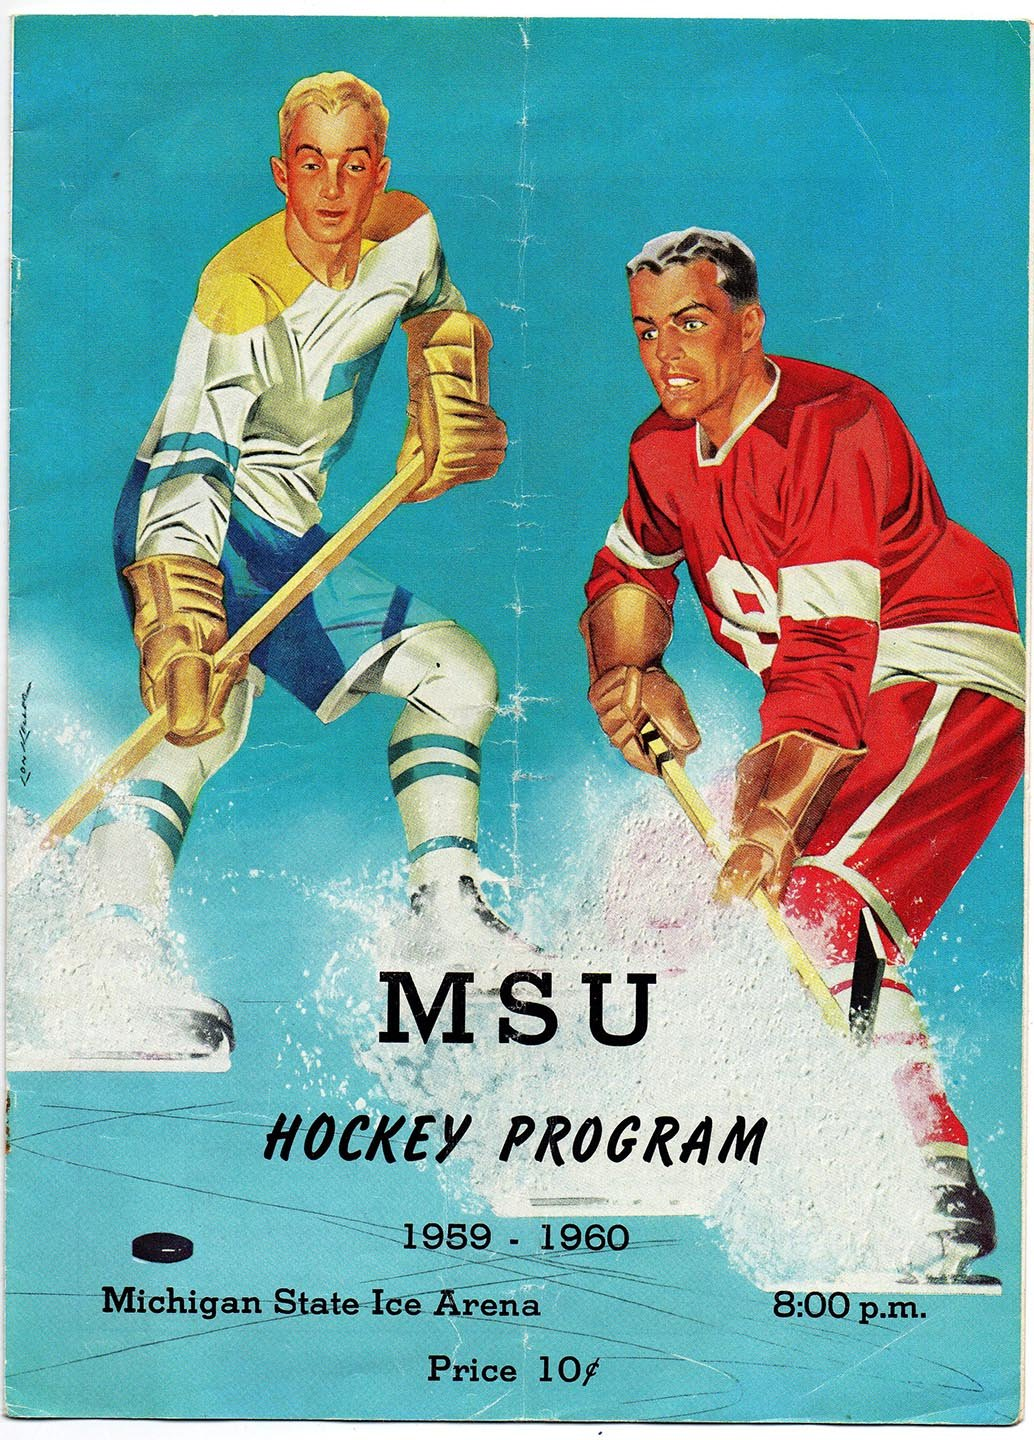 MSU Hockey Program 1959-1960